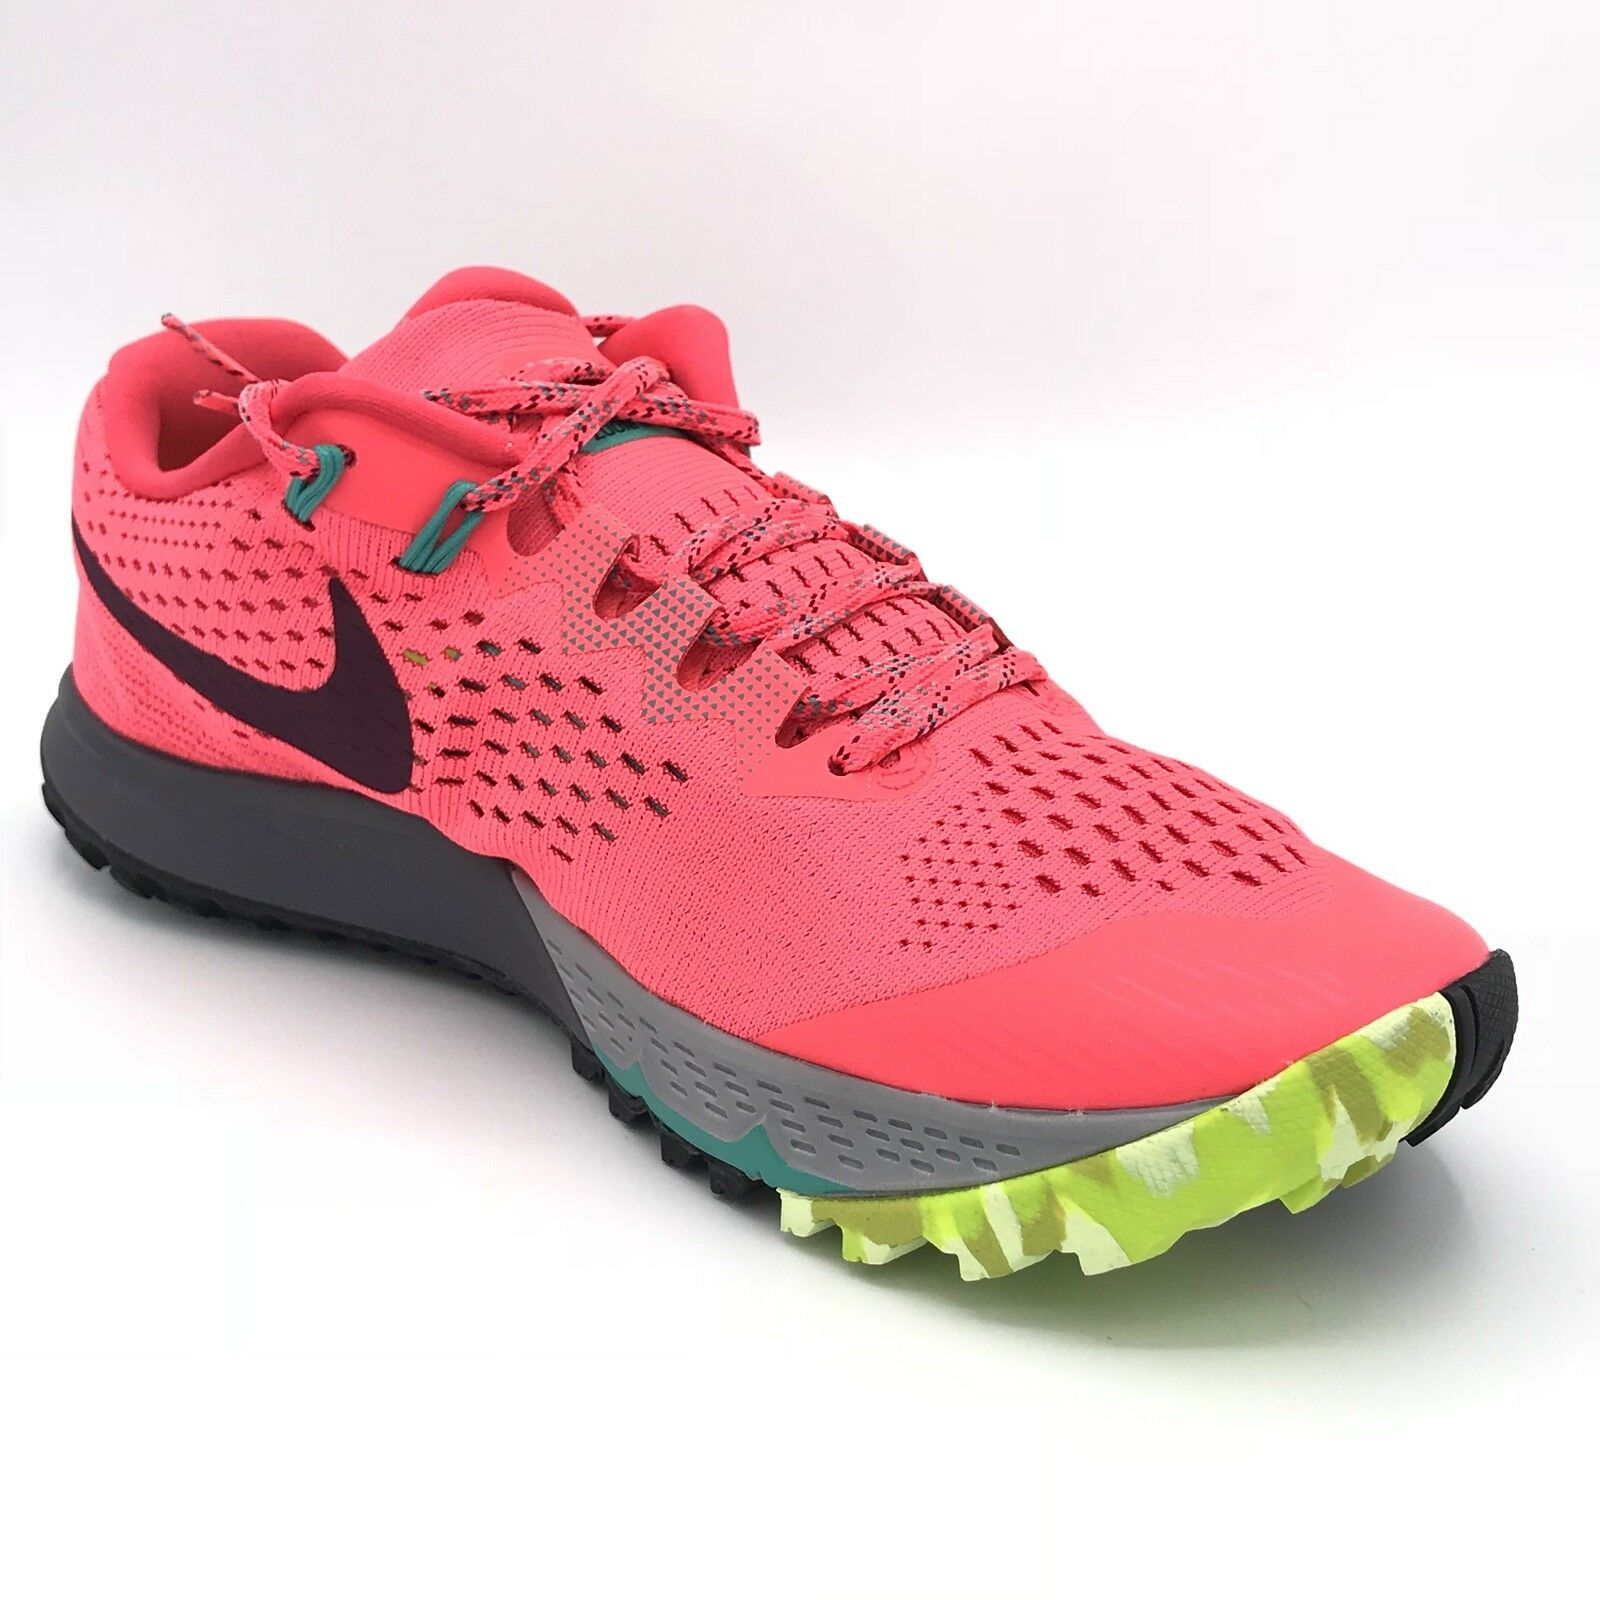 Nike  Air Zoom Terra Kiger 4 Running shoes Women's